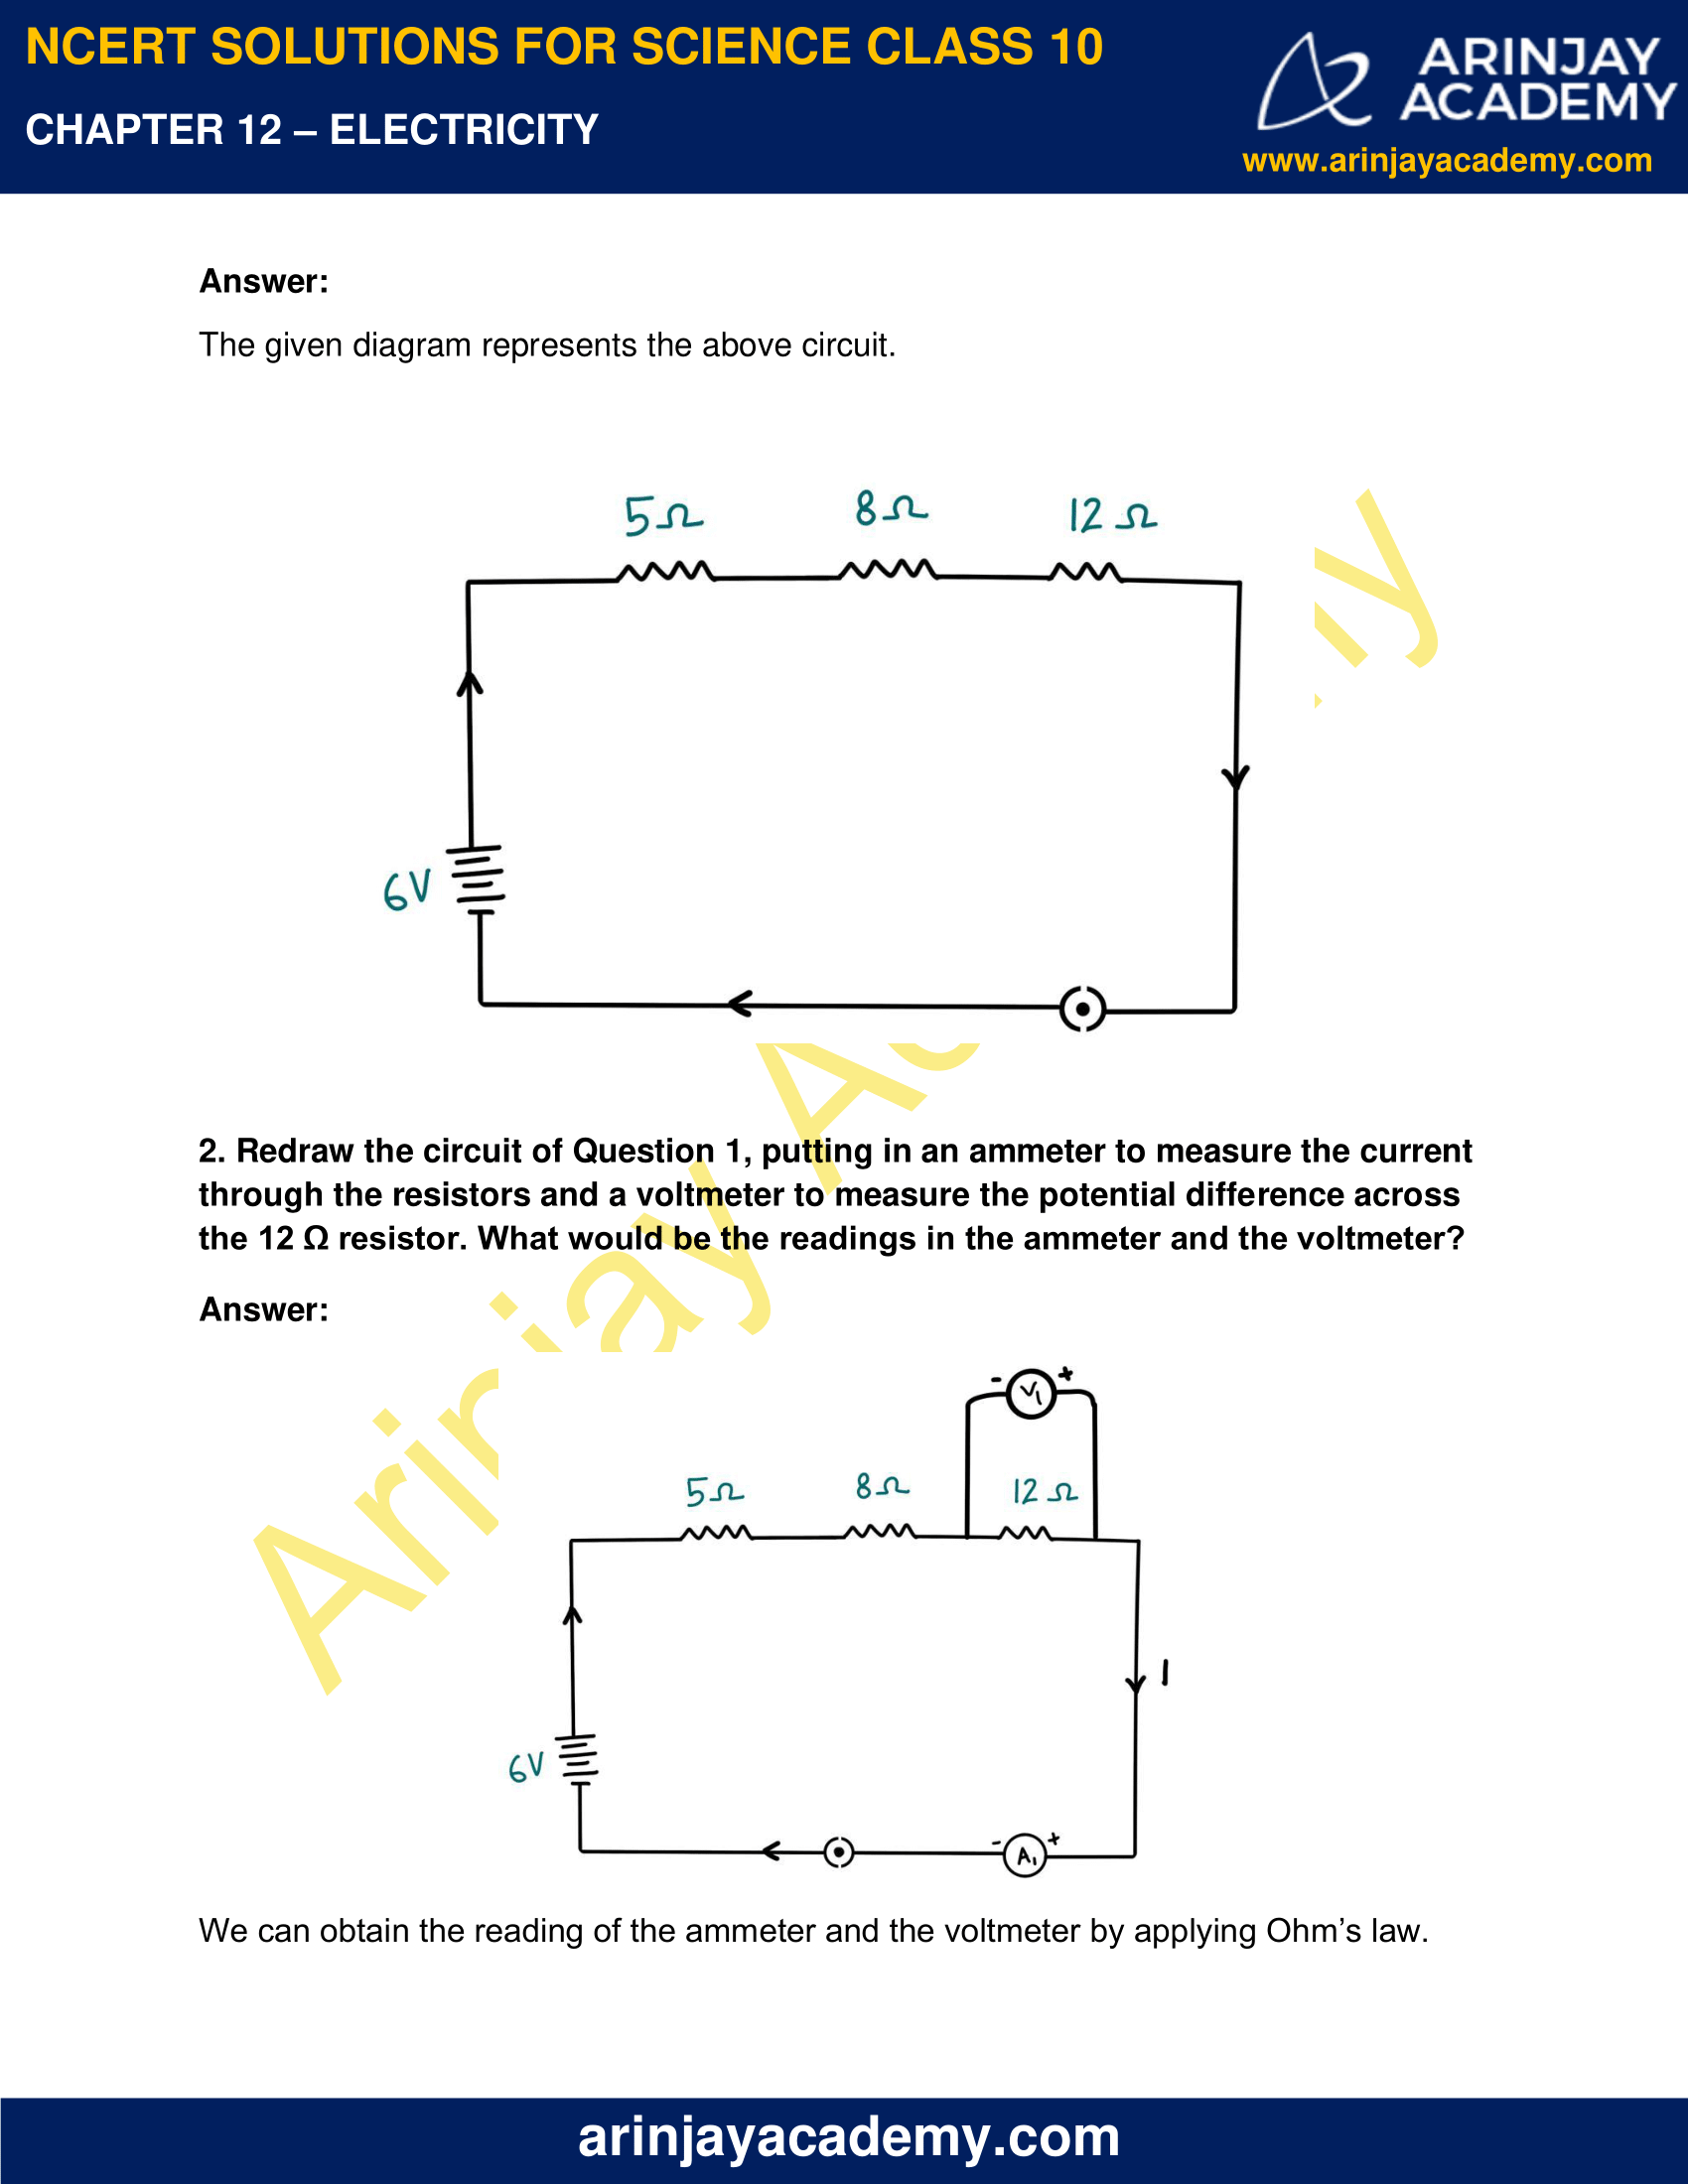 NCERT Solutions for Class 10 Science Chapter 12 Electricity image 6